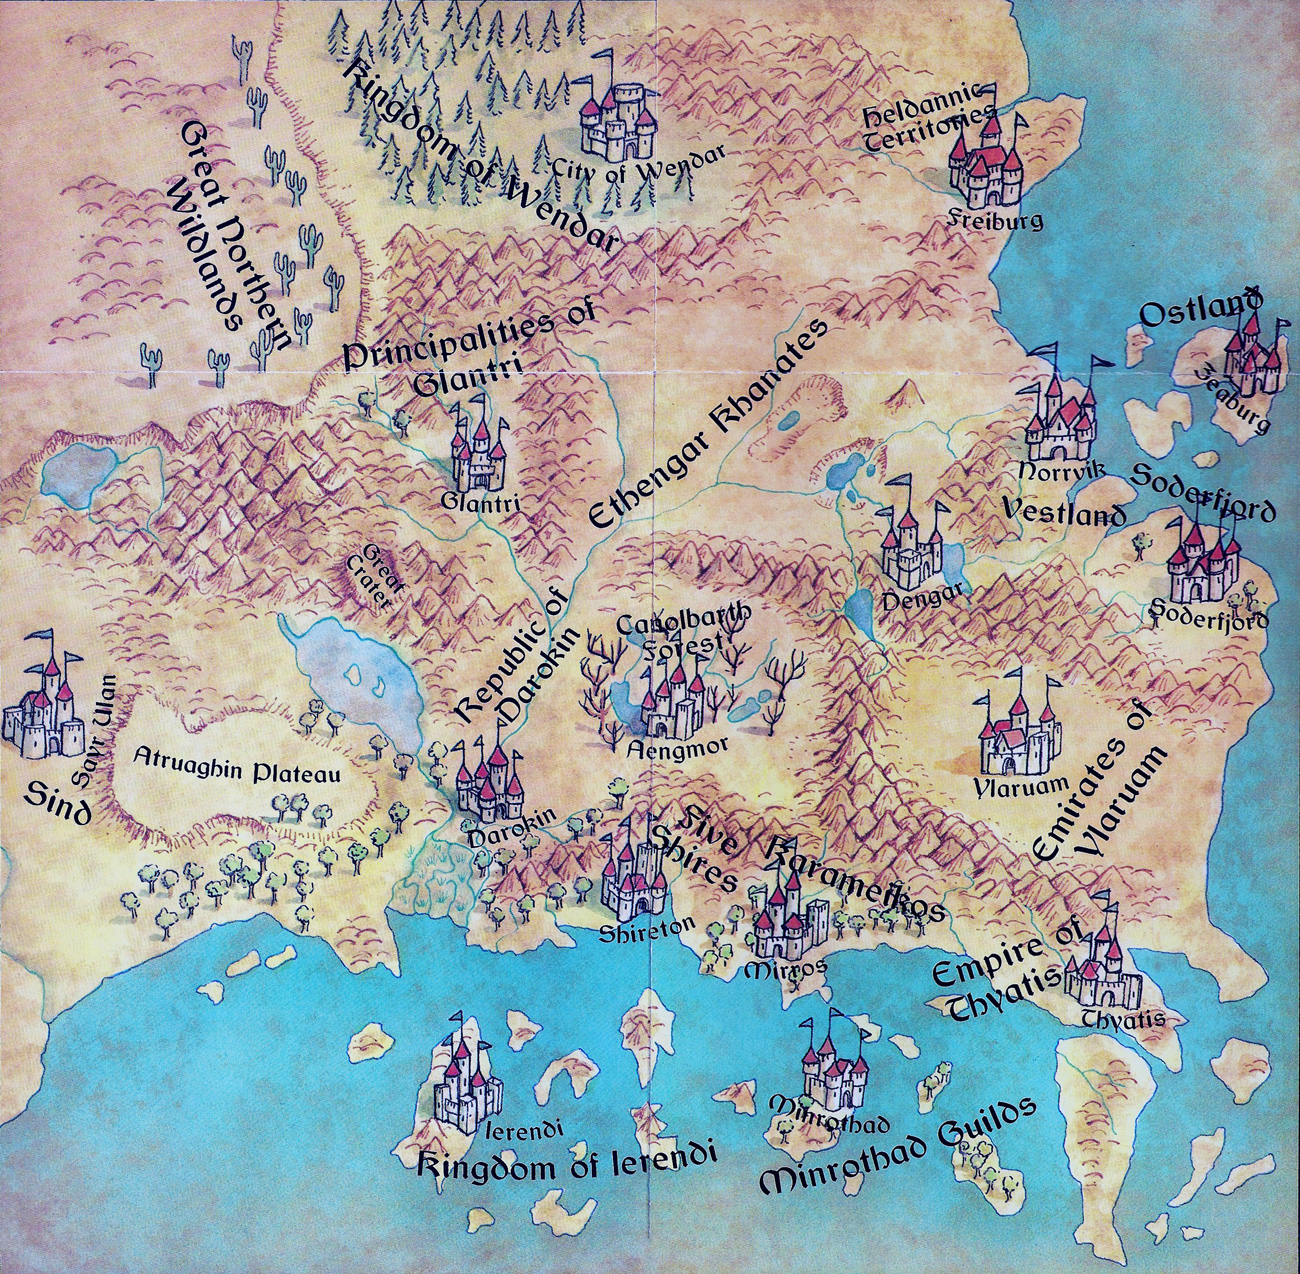 Mystara-Karameikos-Known-World-Map-Jashuan_s-Almanac.jpg